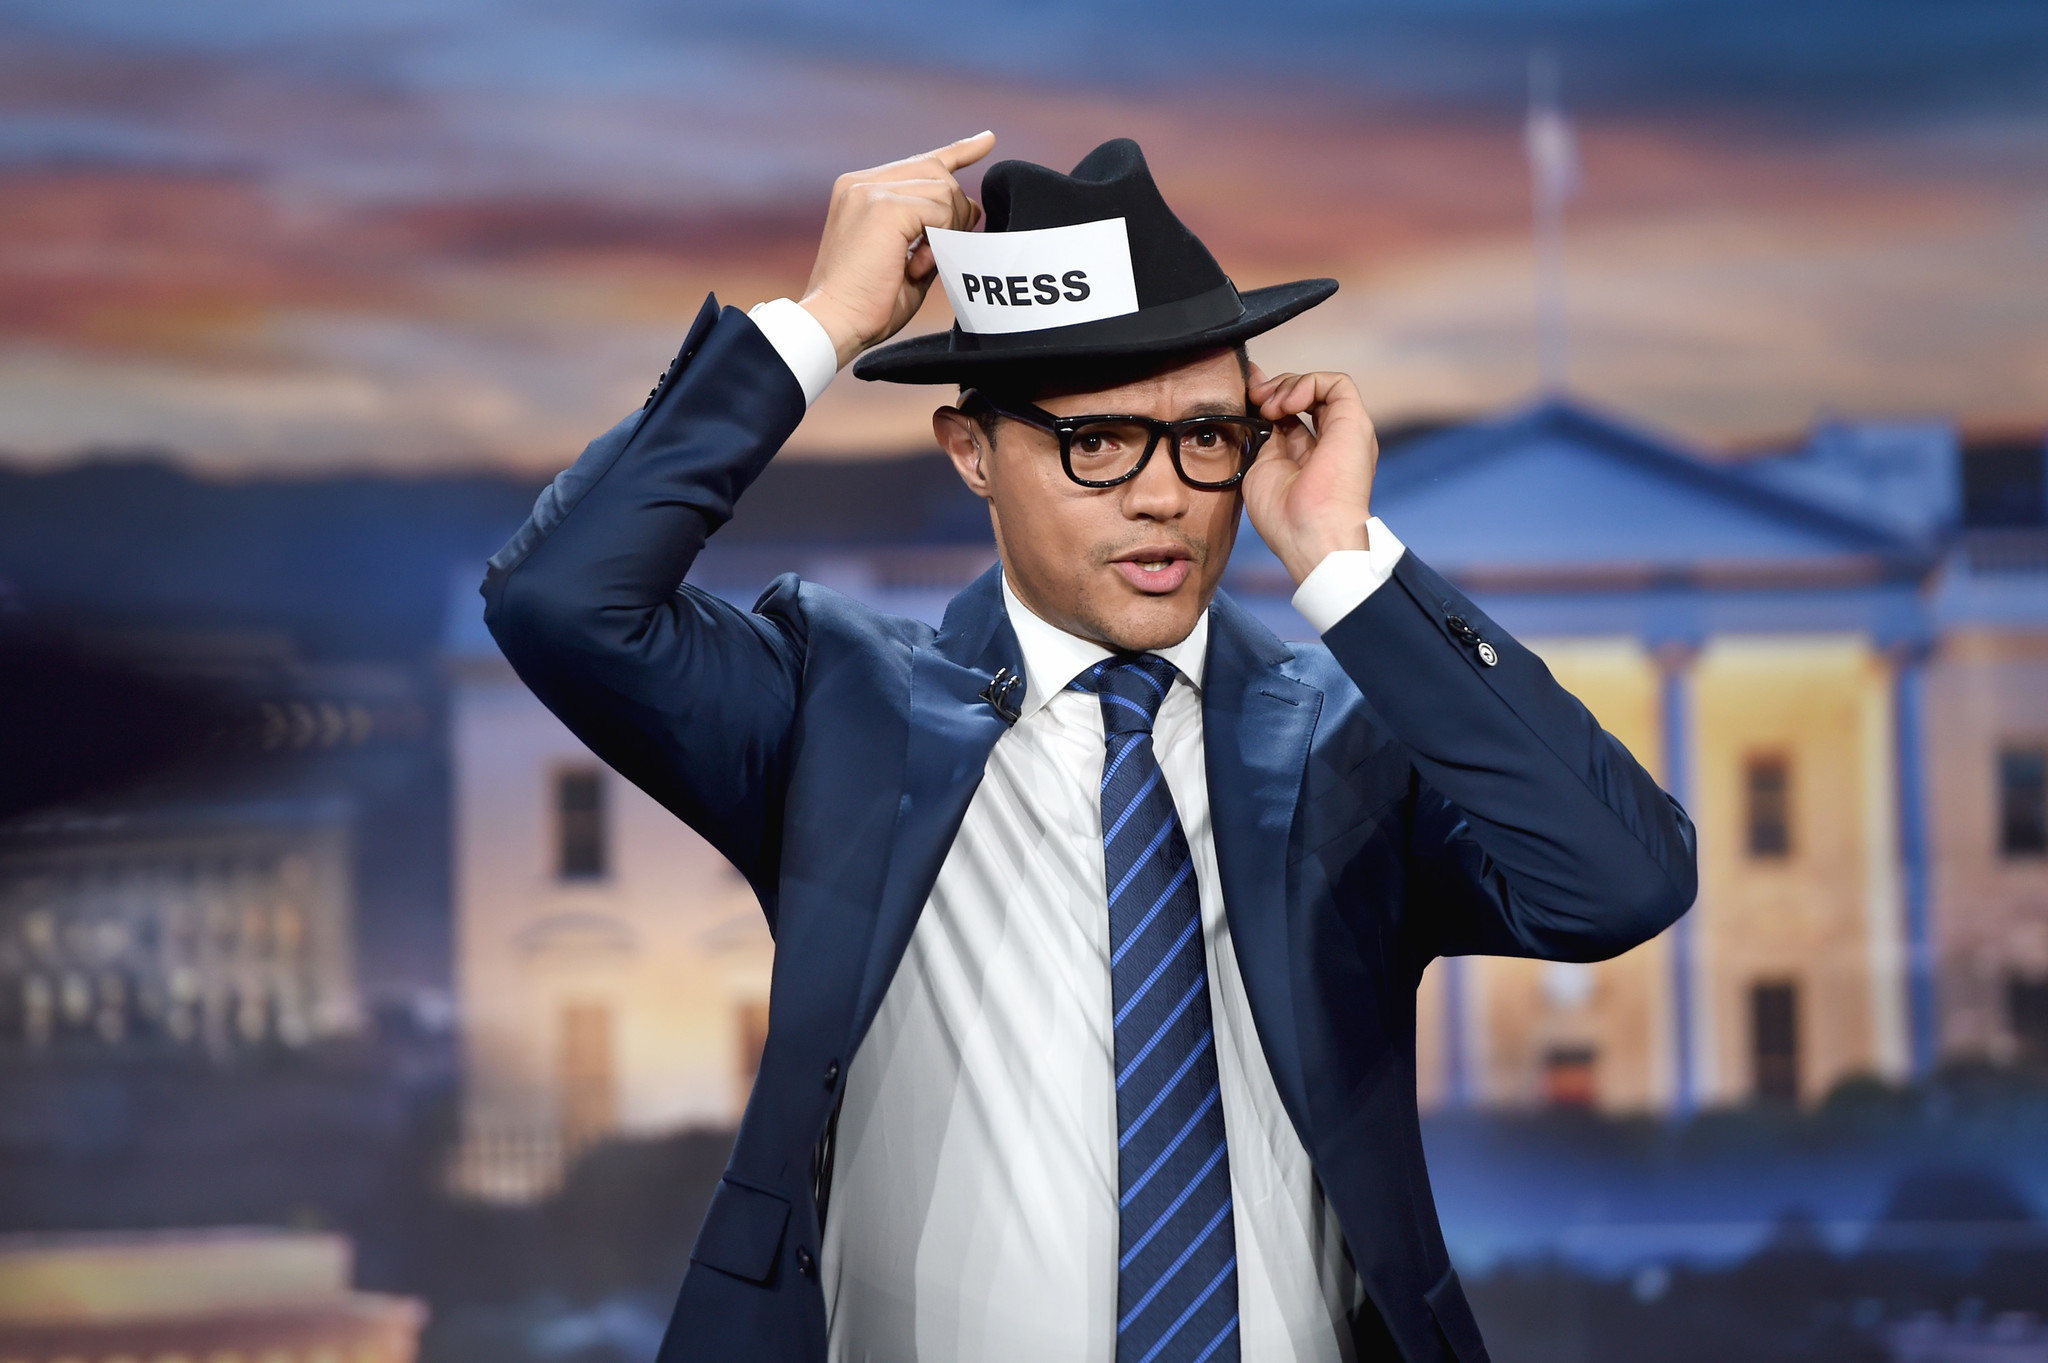 'The Daily Show with Trevor Noah' tries to makes us laugh ...